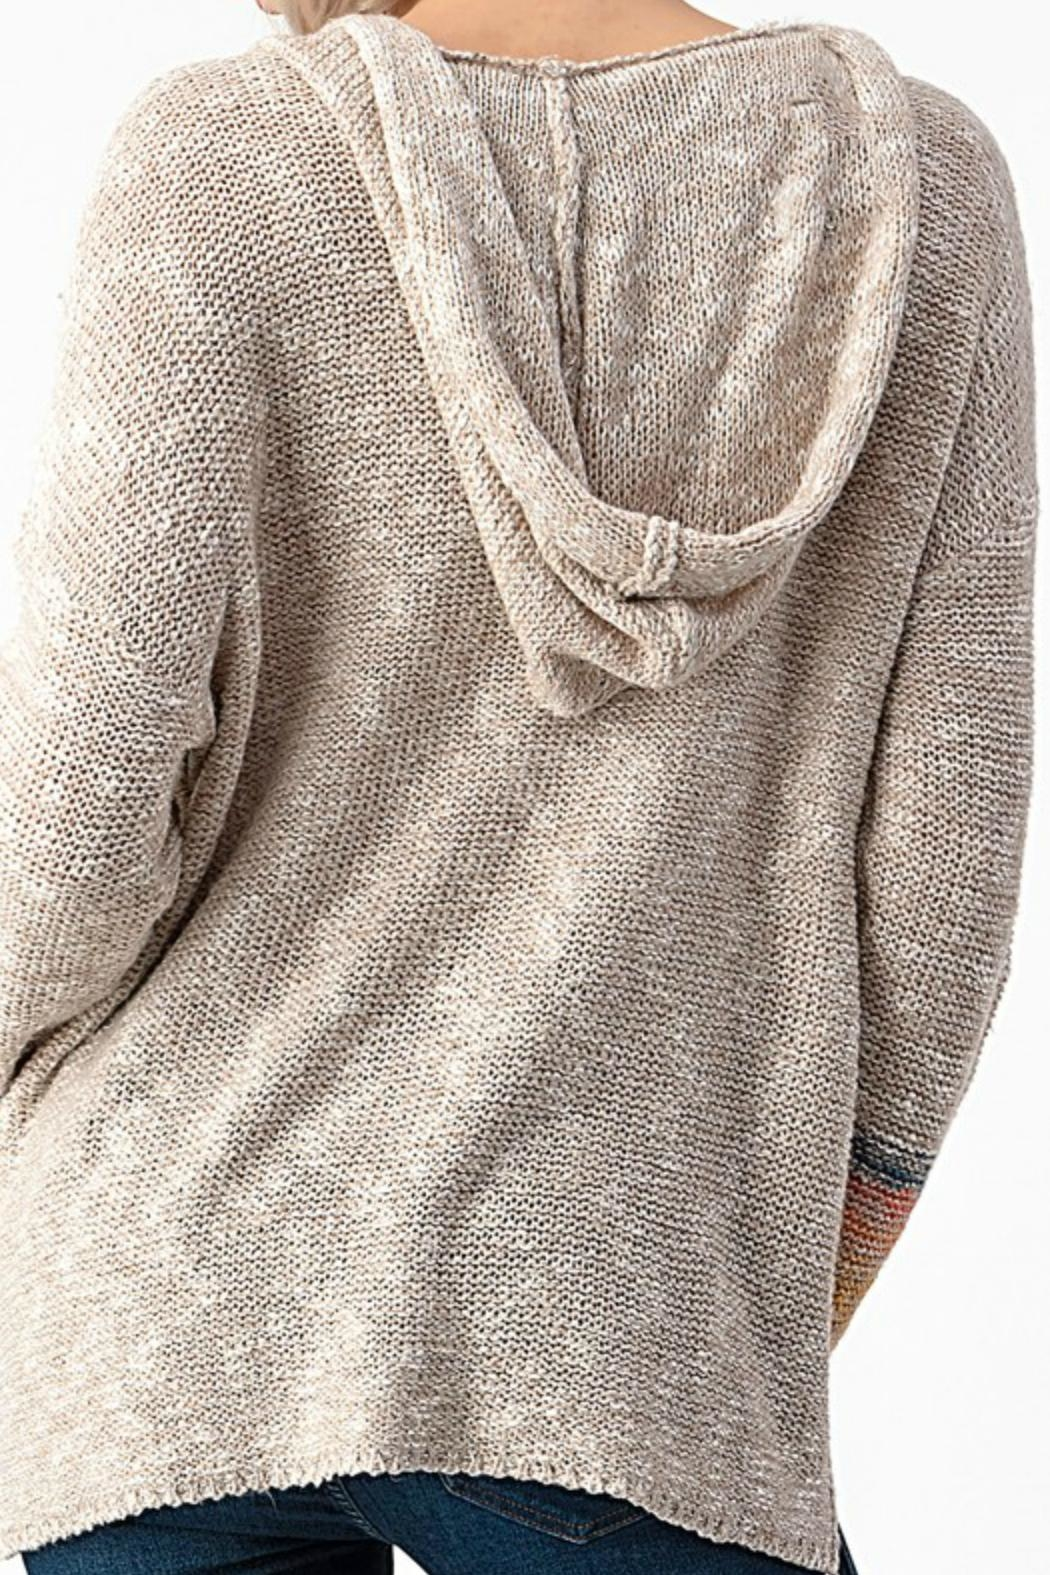 Sweet Claire Seaside Textured Hoodie - Front Full Image